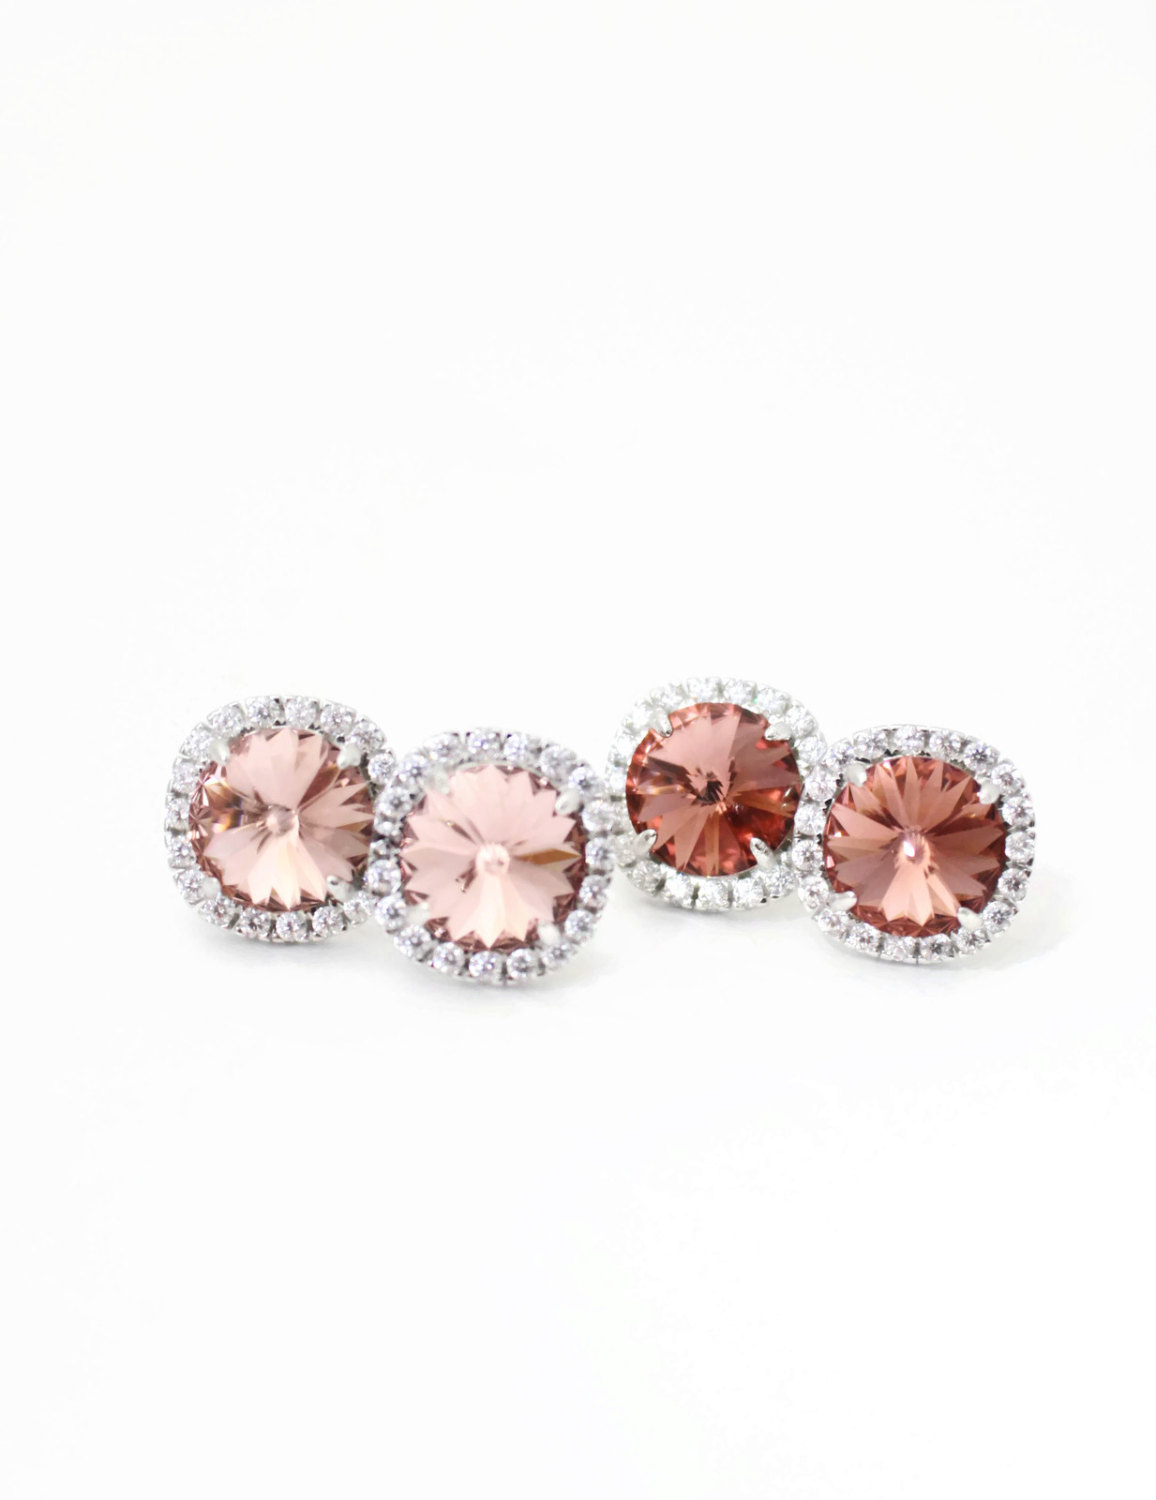 Swarovski Earrings - Blush Earrings - Cubic Zirconia